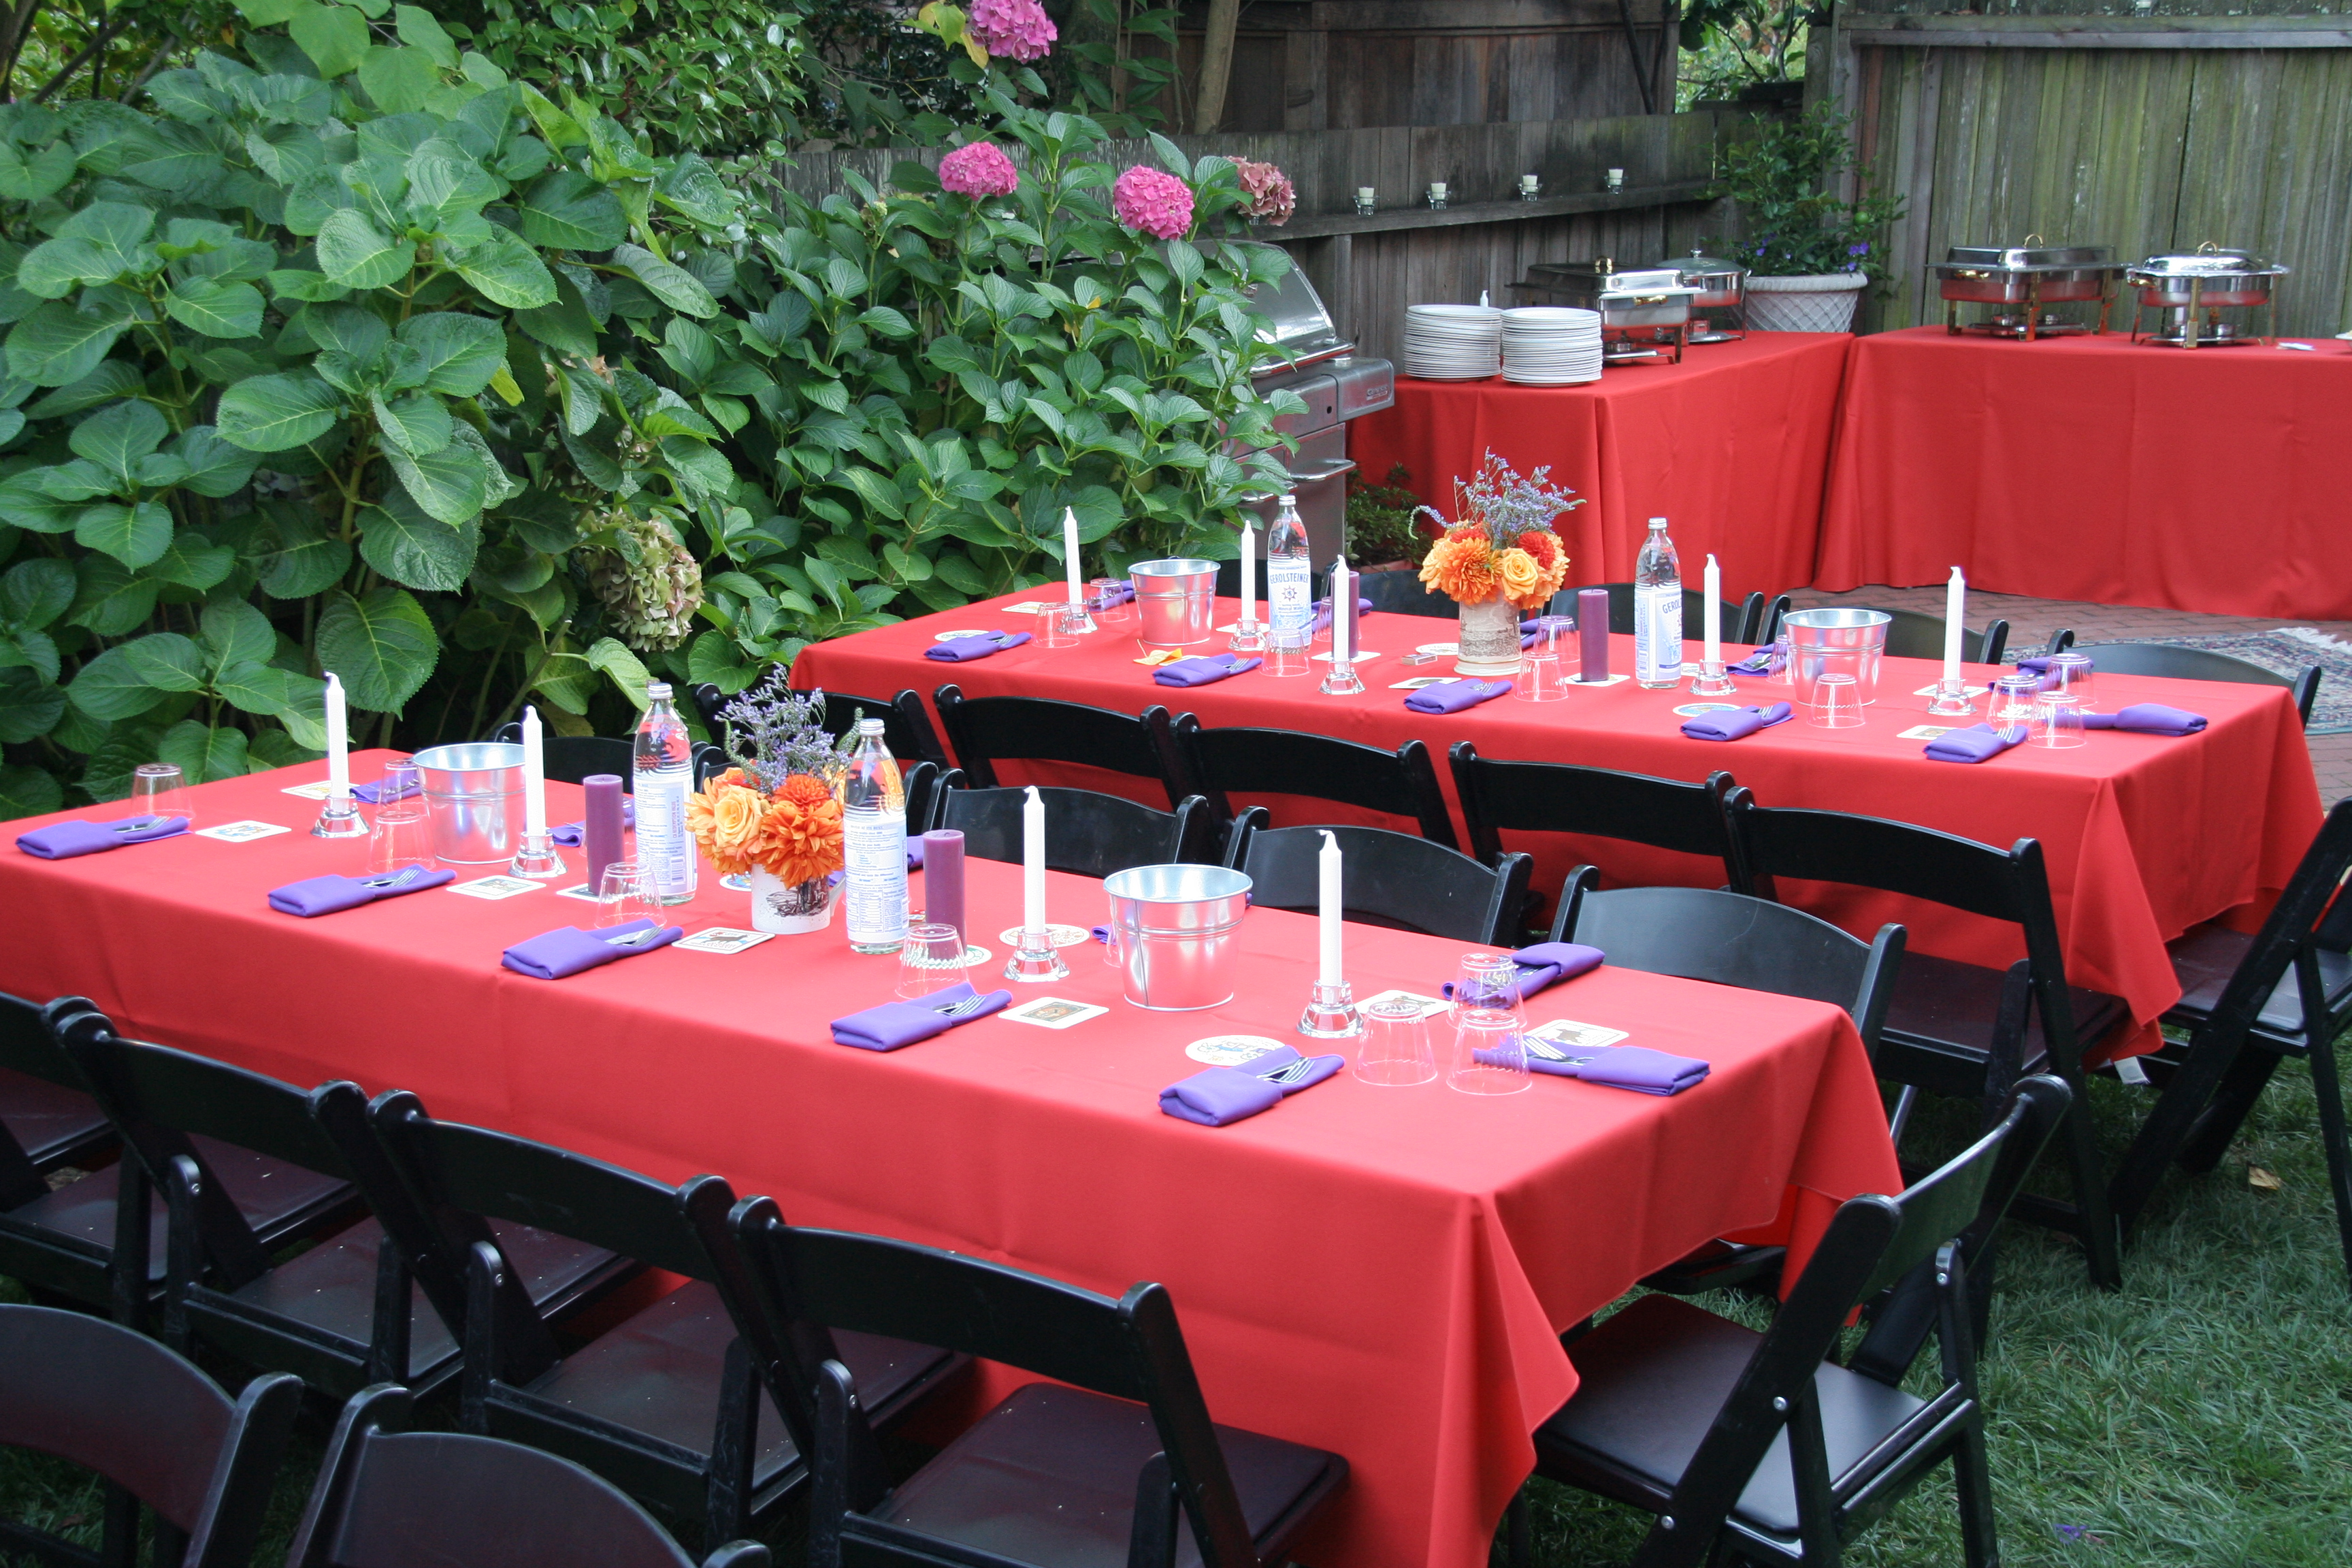 & Terrific Red Table Settings Ideas - Best Image Engine - tagranks.com